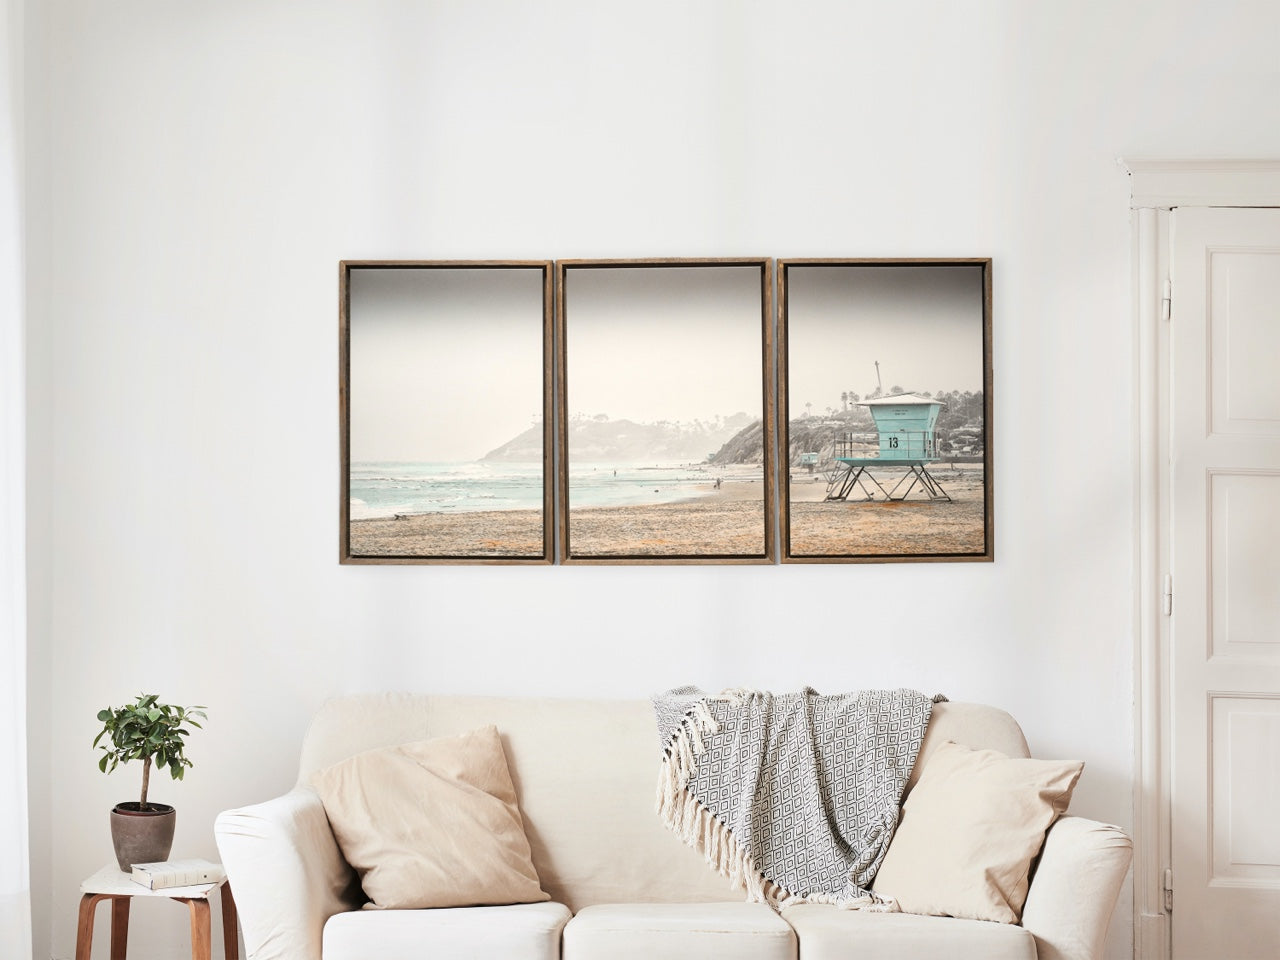 Beach Art Triptych in living room over sofa